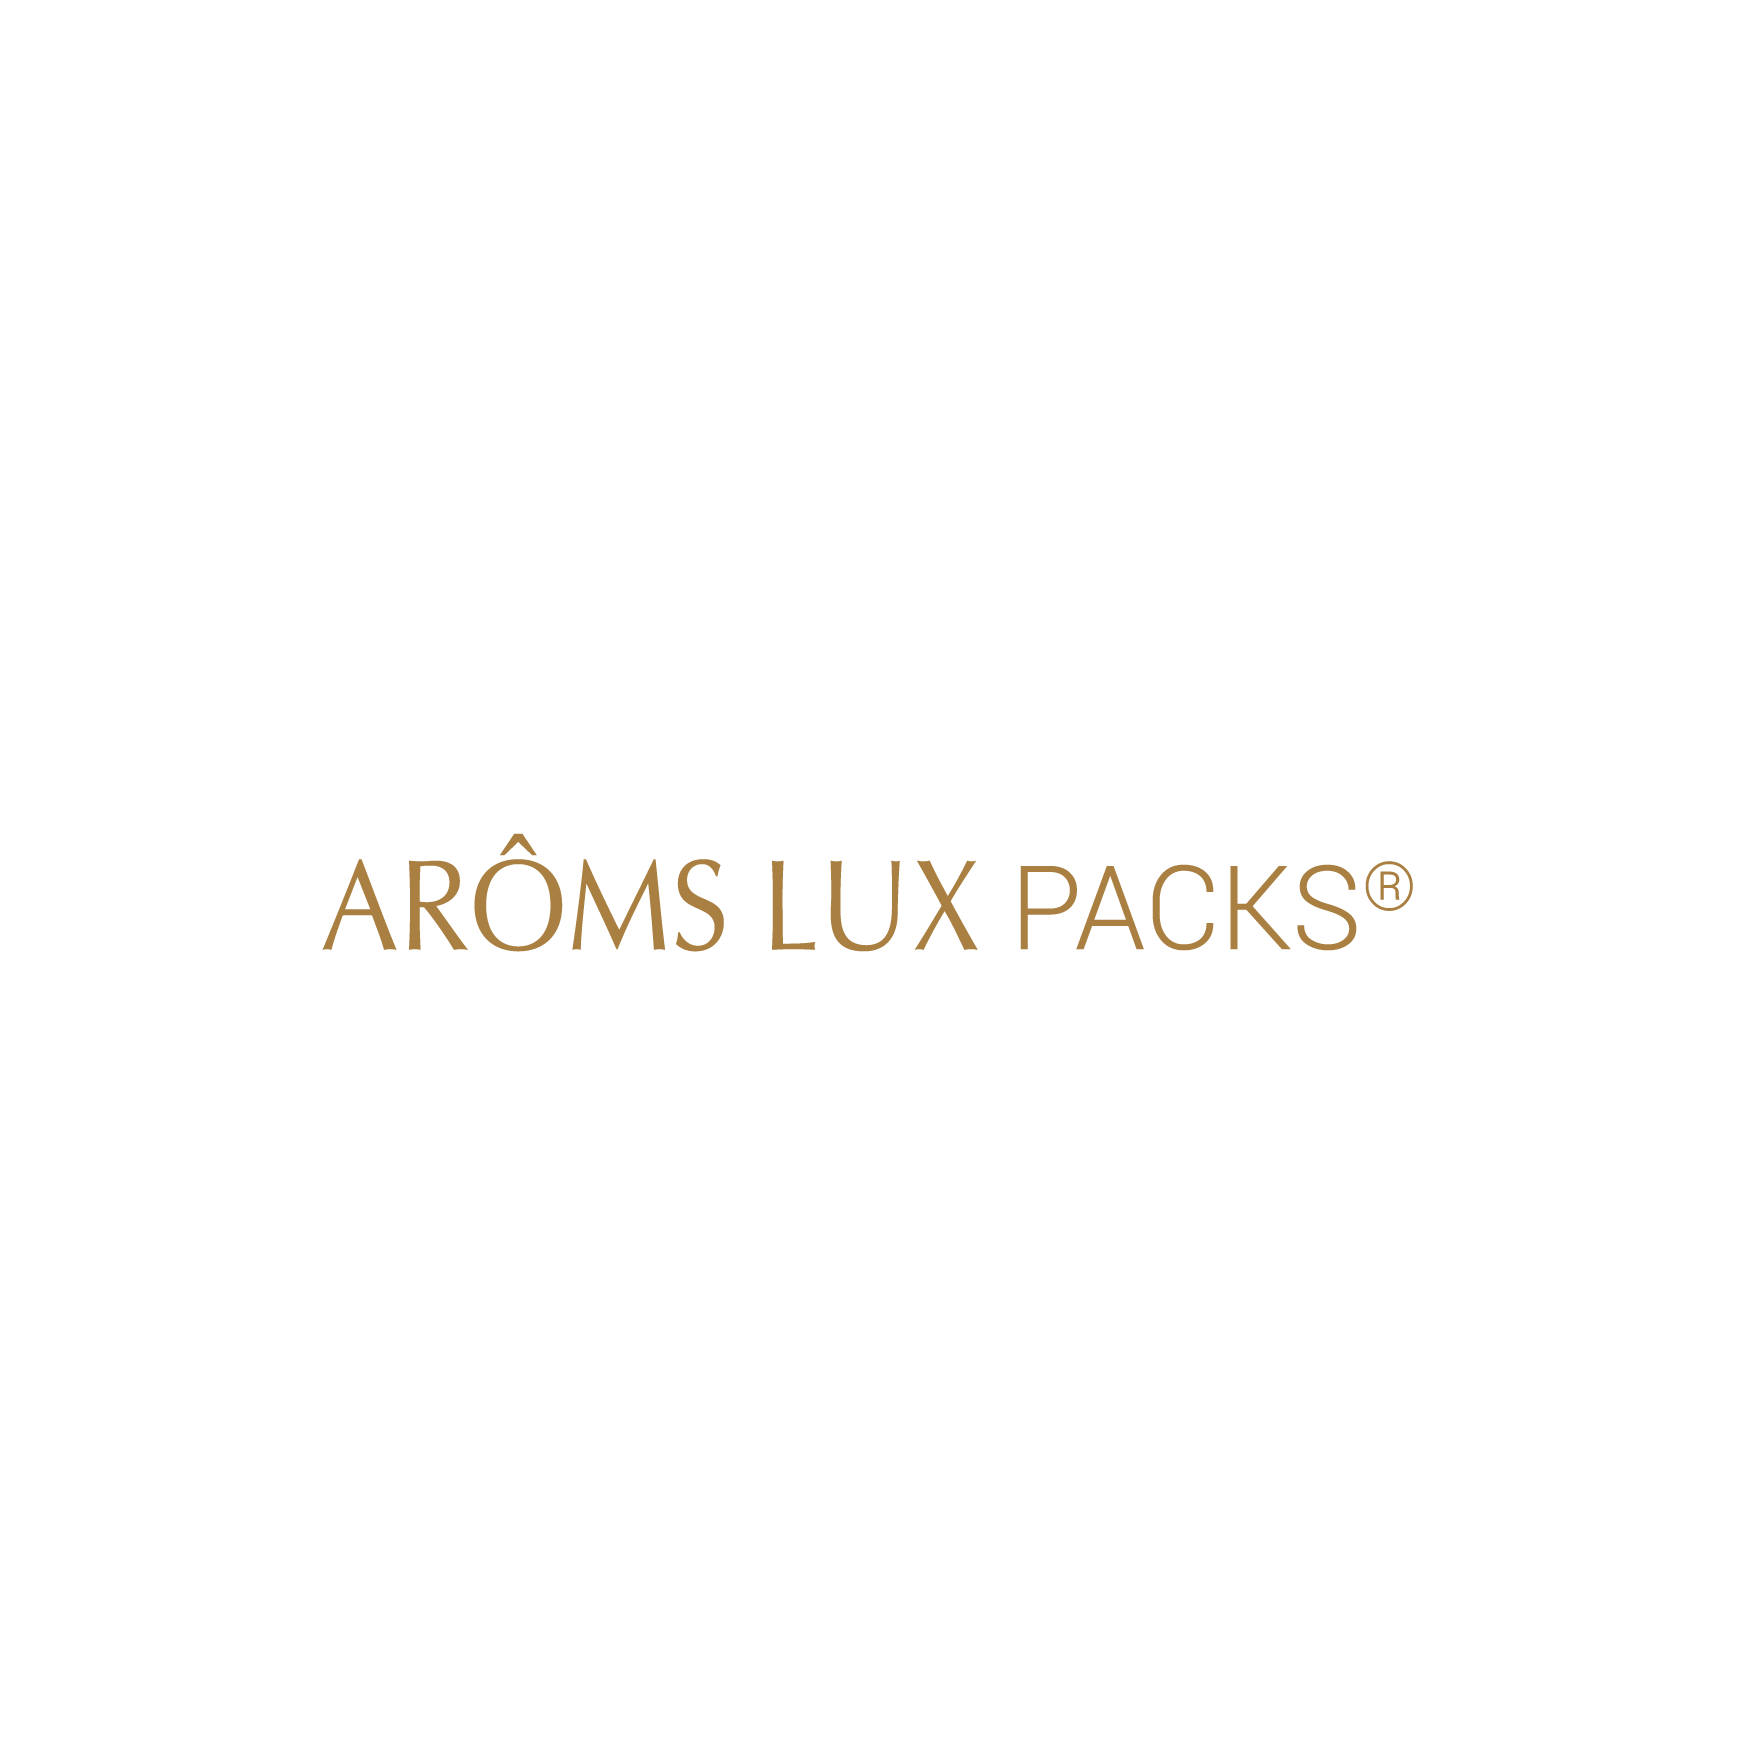 Aroms Lux Packs